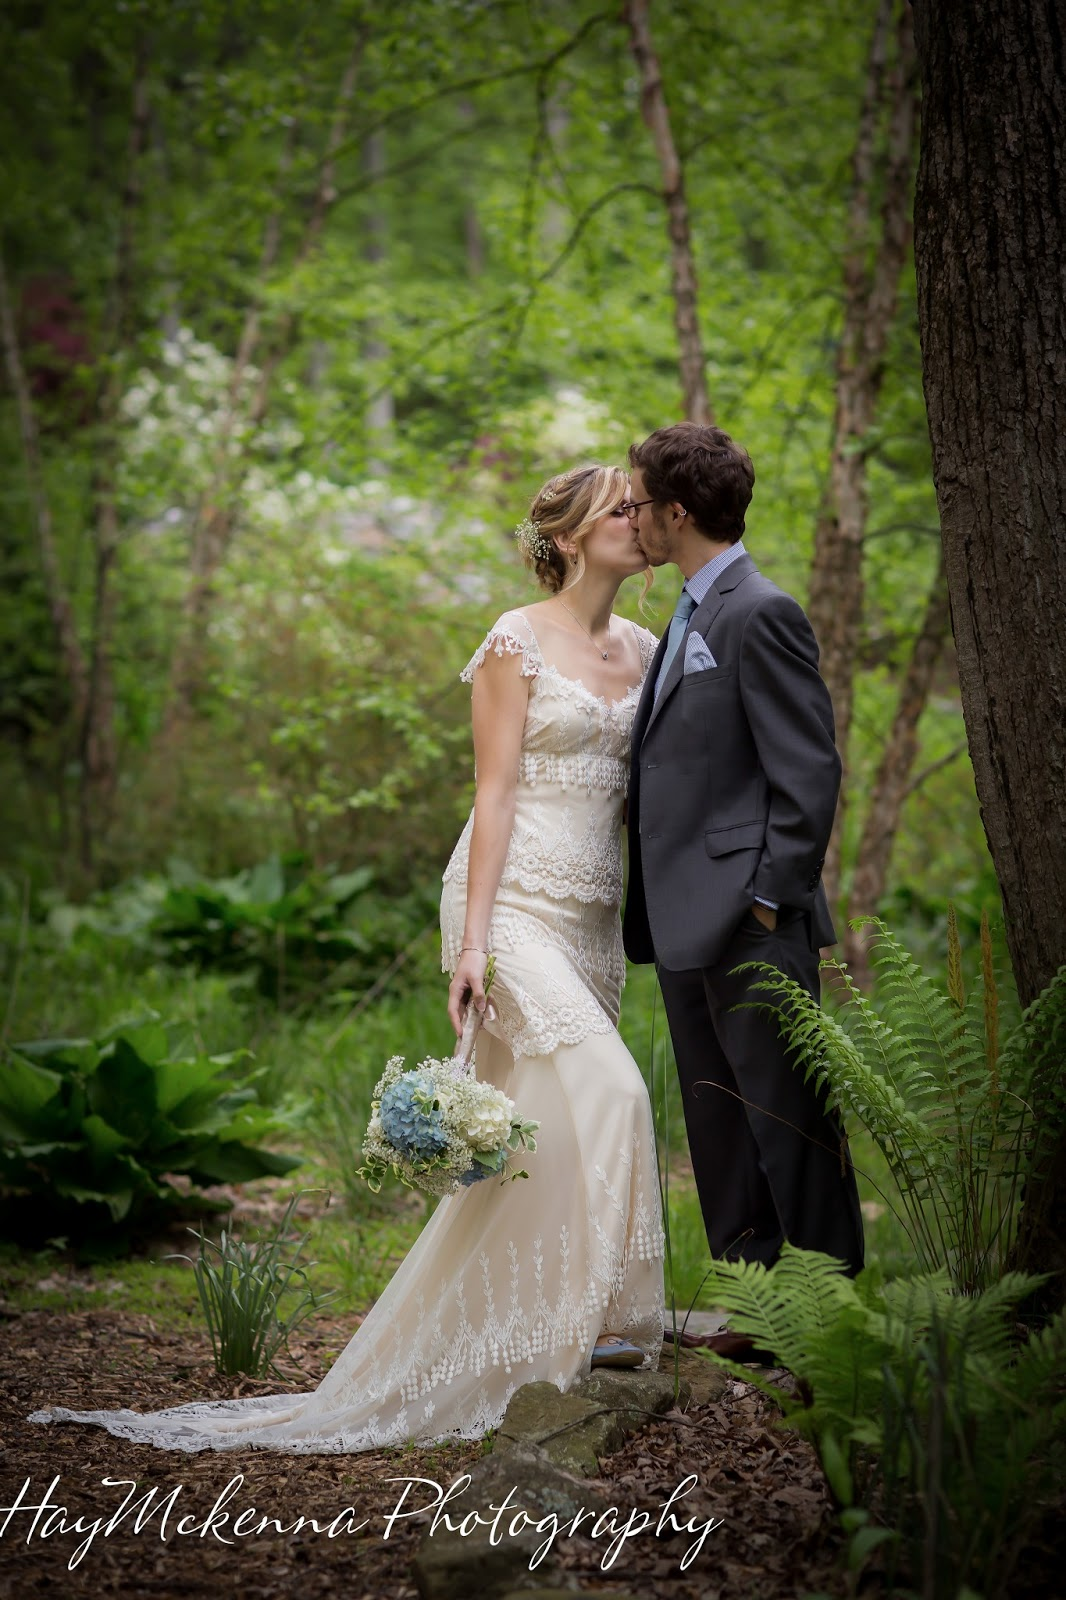 HayMckenna Photography Outdoor Wedding in the Woods at